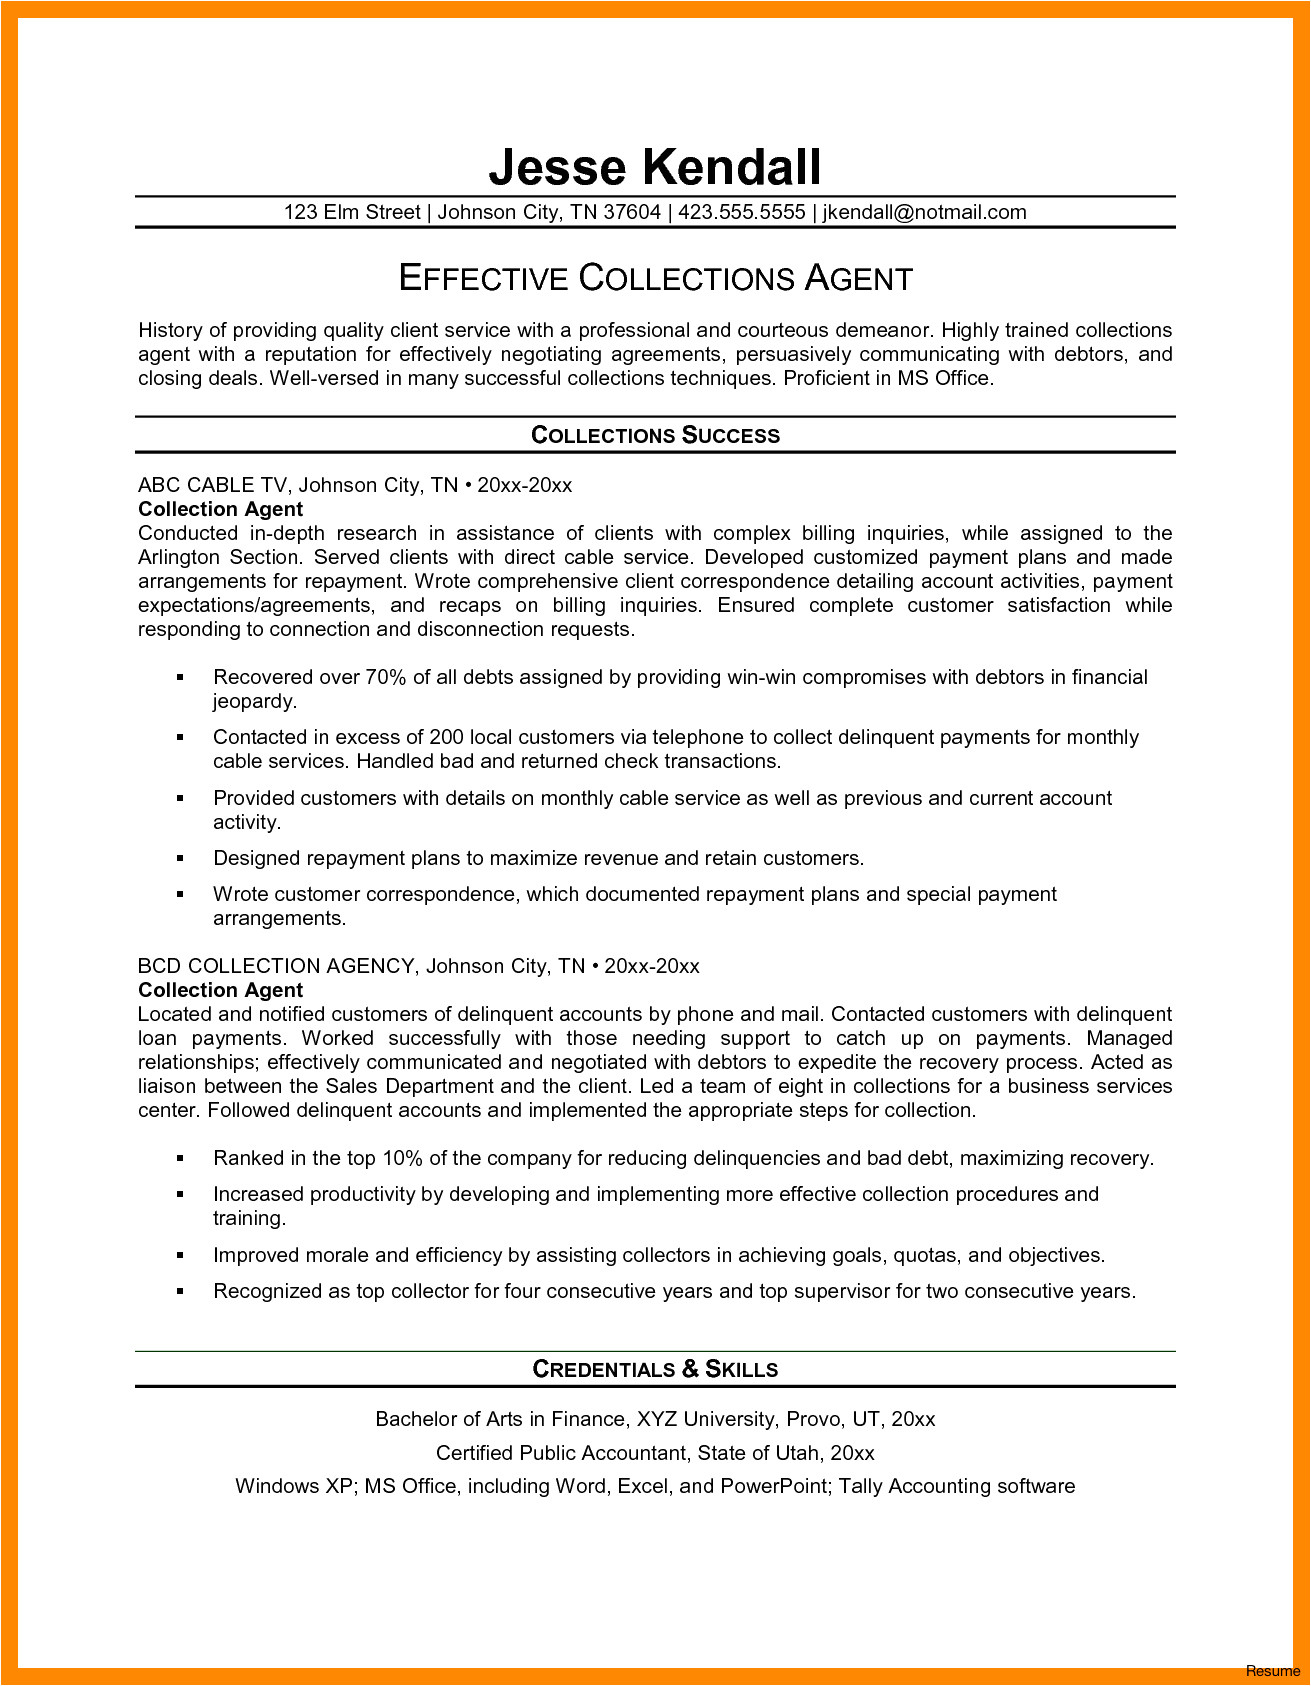 travel agent resume no experience fresh resume template and cover letter